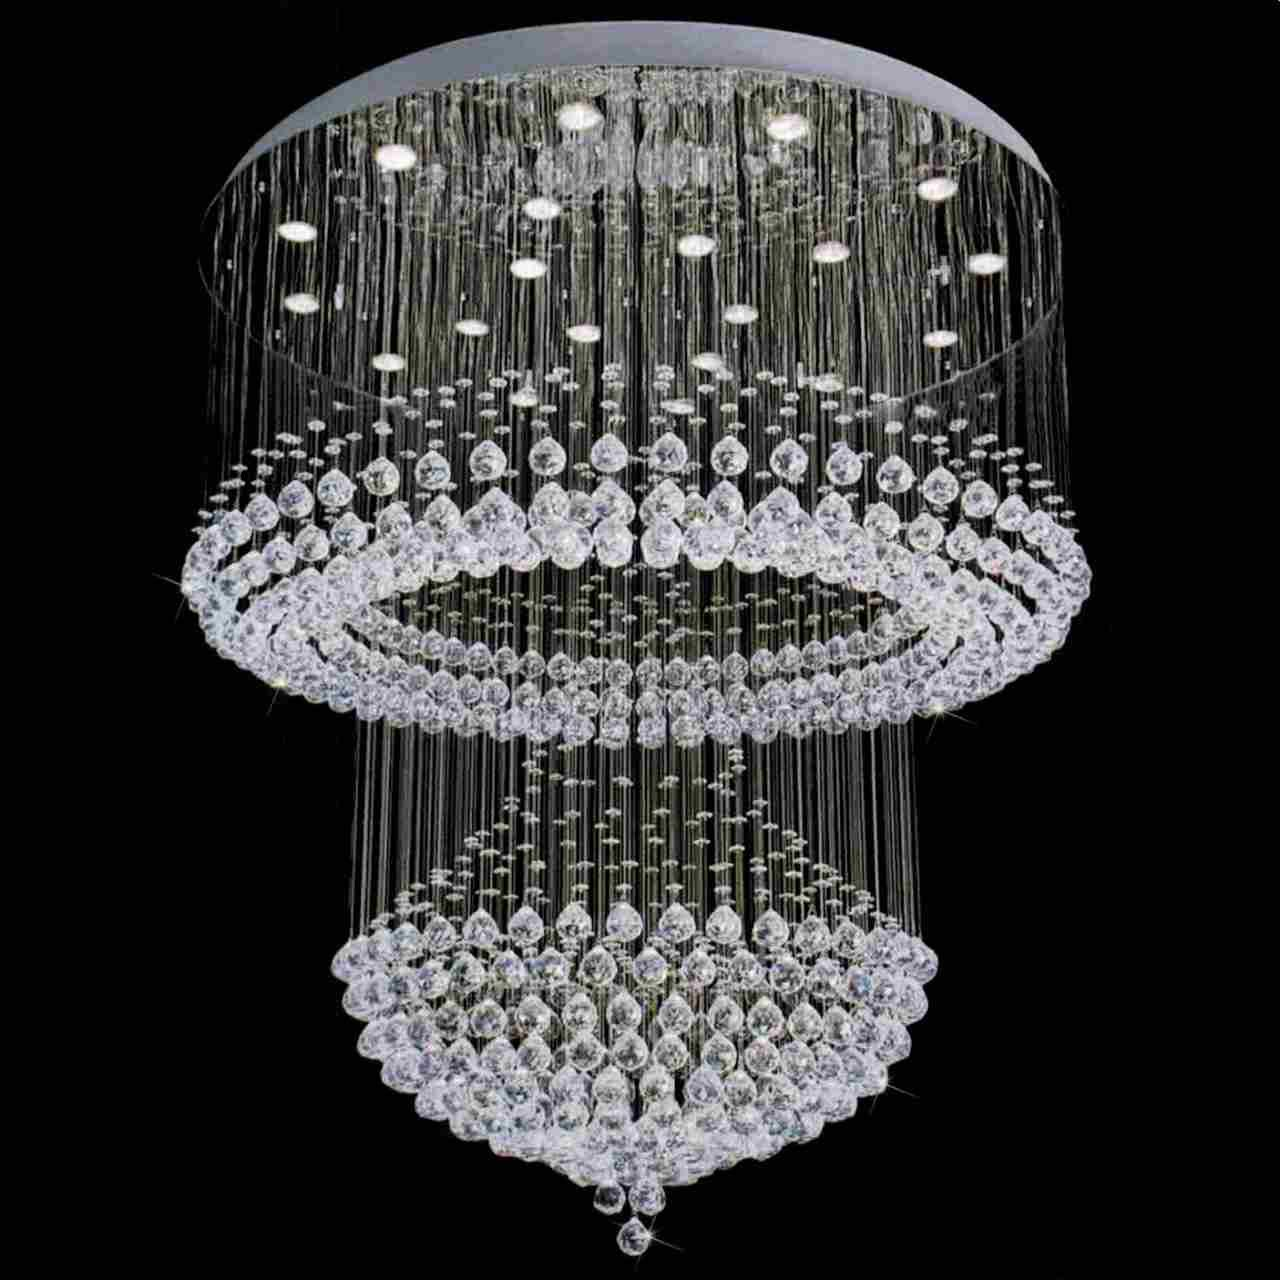 Chandelier Modern Crystal Chandelier Modern Foyer Large Foyer Chandeliers